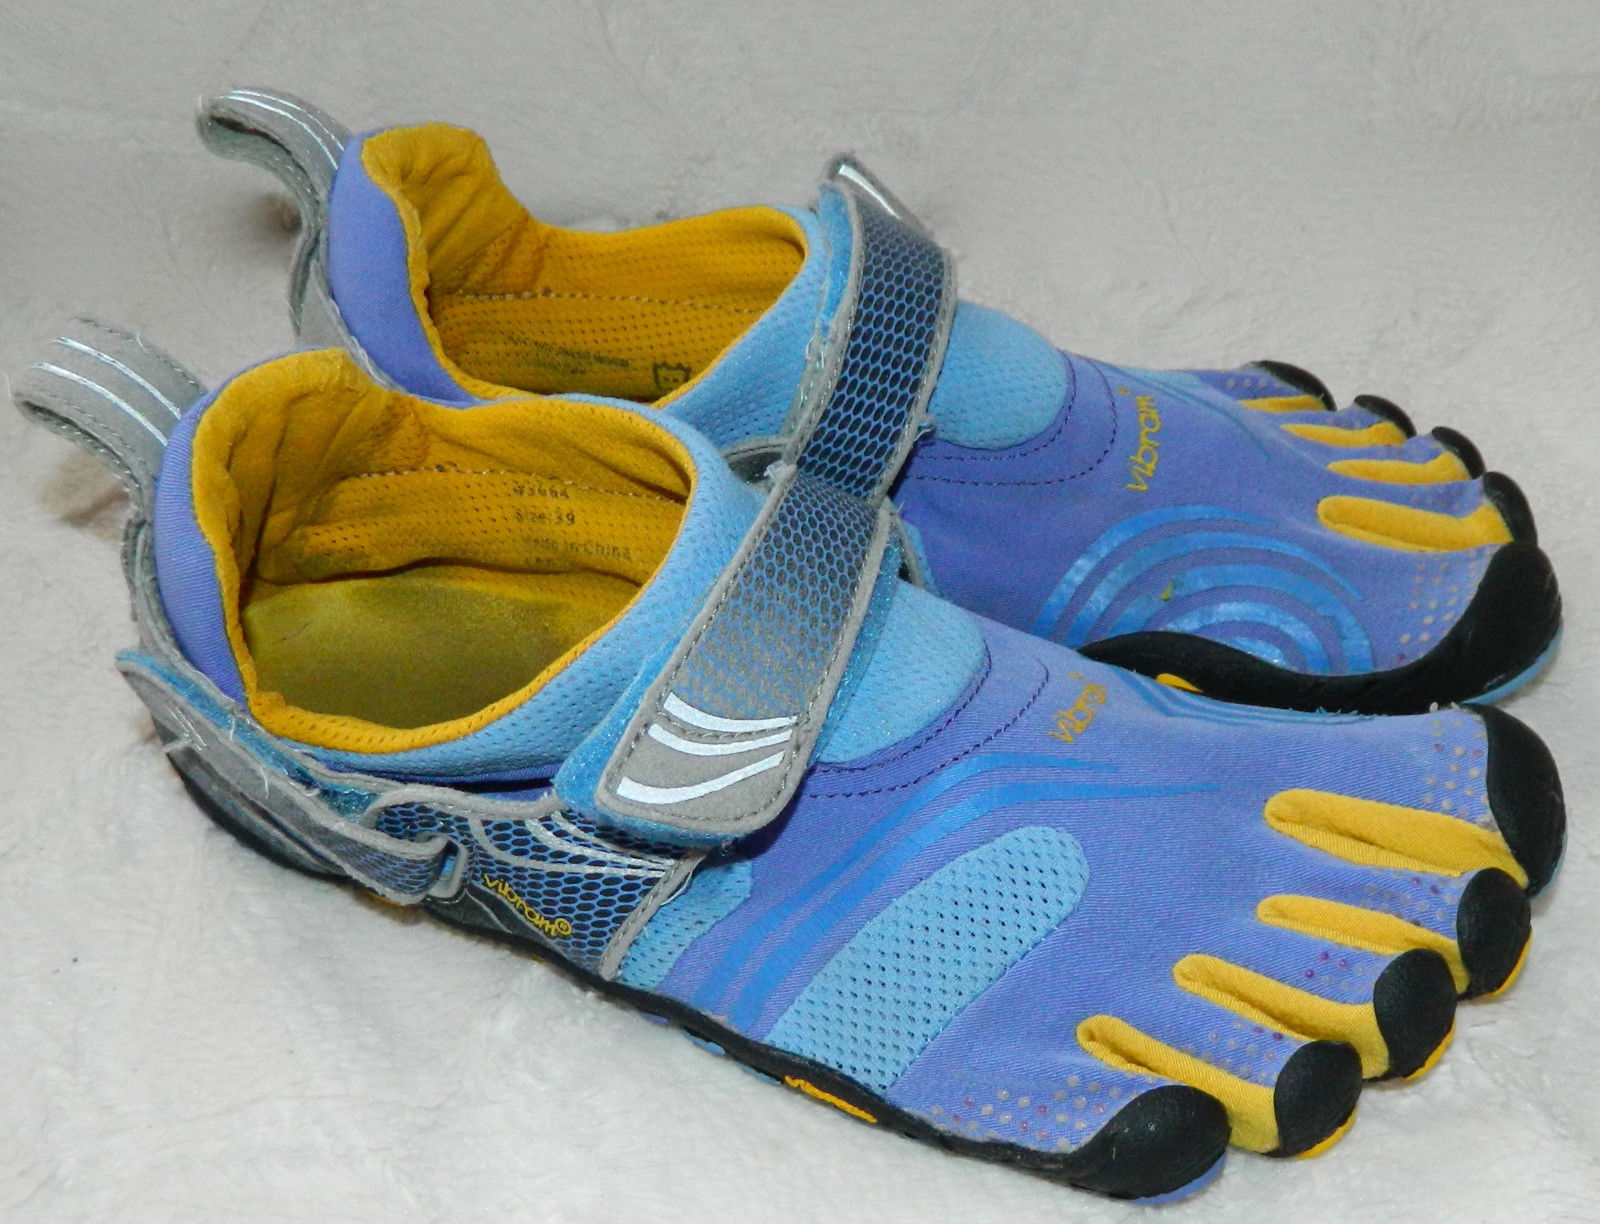 outlet store acd61 77061 Vibram Fivefingers Komodo Shoes Sneakers Sz and 50 similar items. S l1600